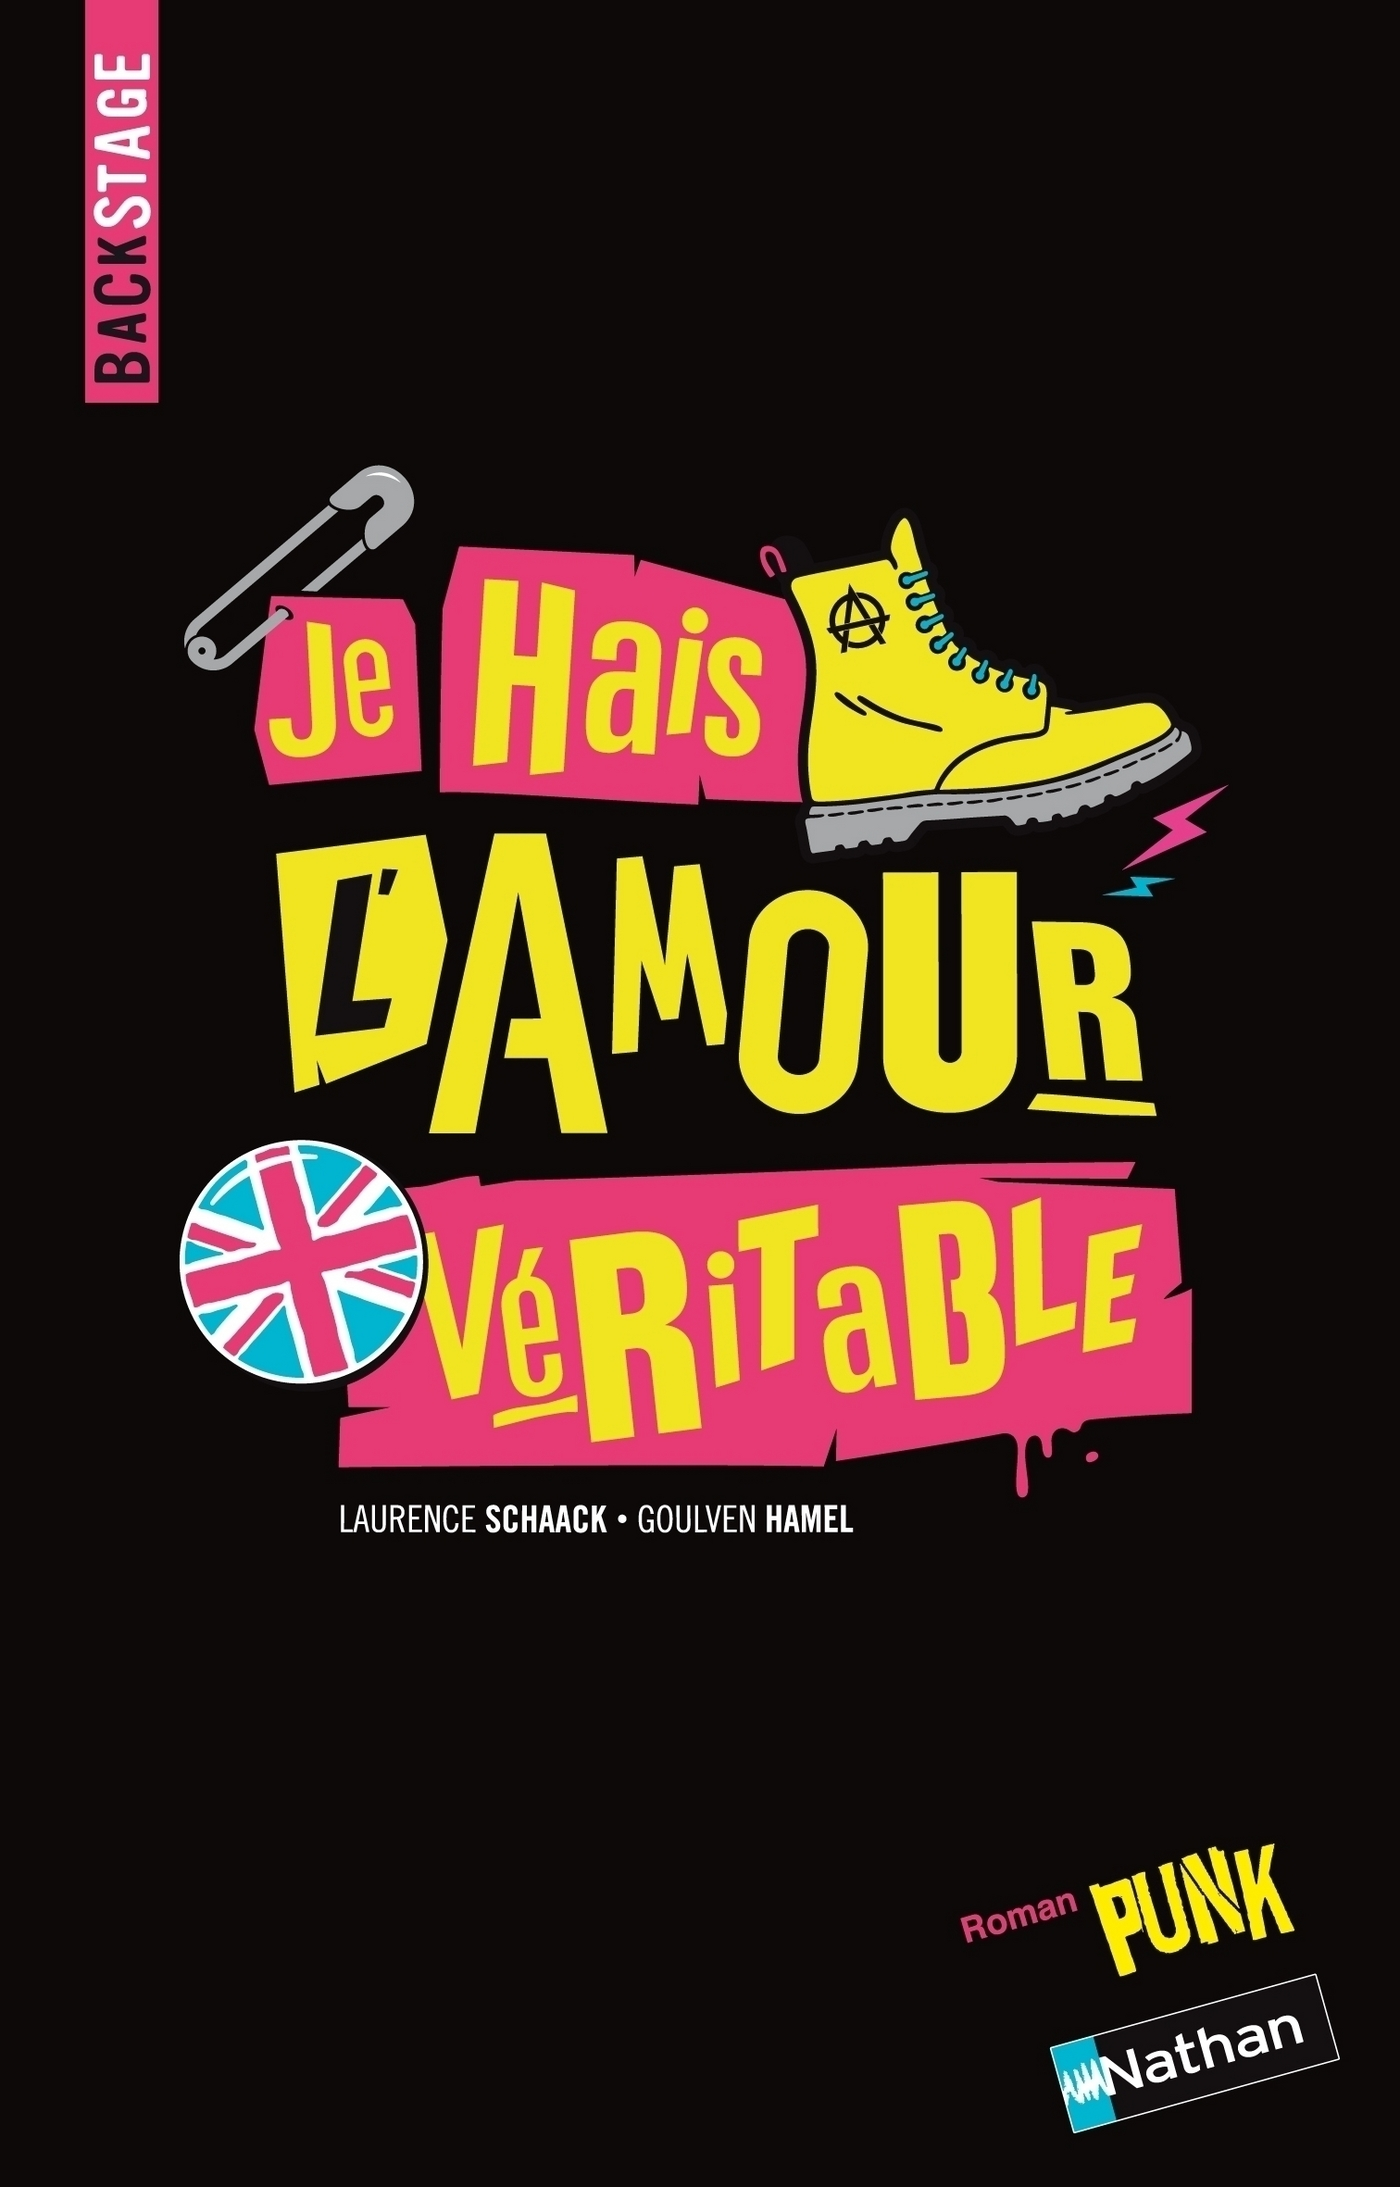 Backstage - Je hais l'amour véritable